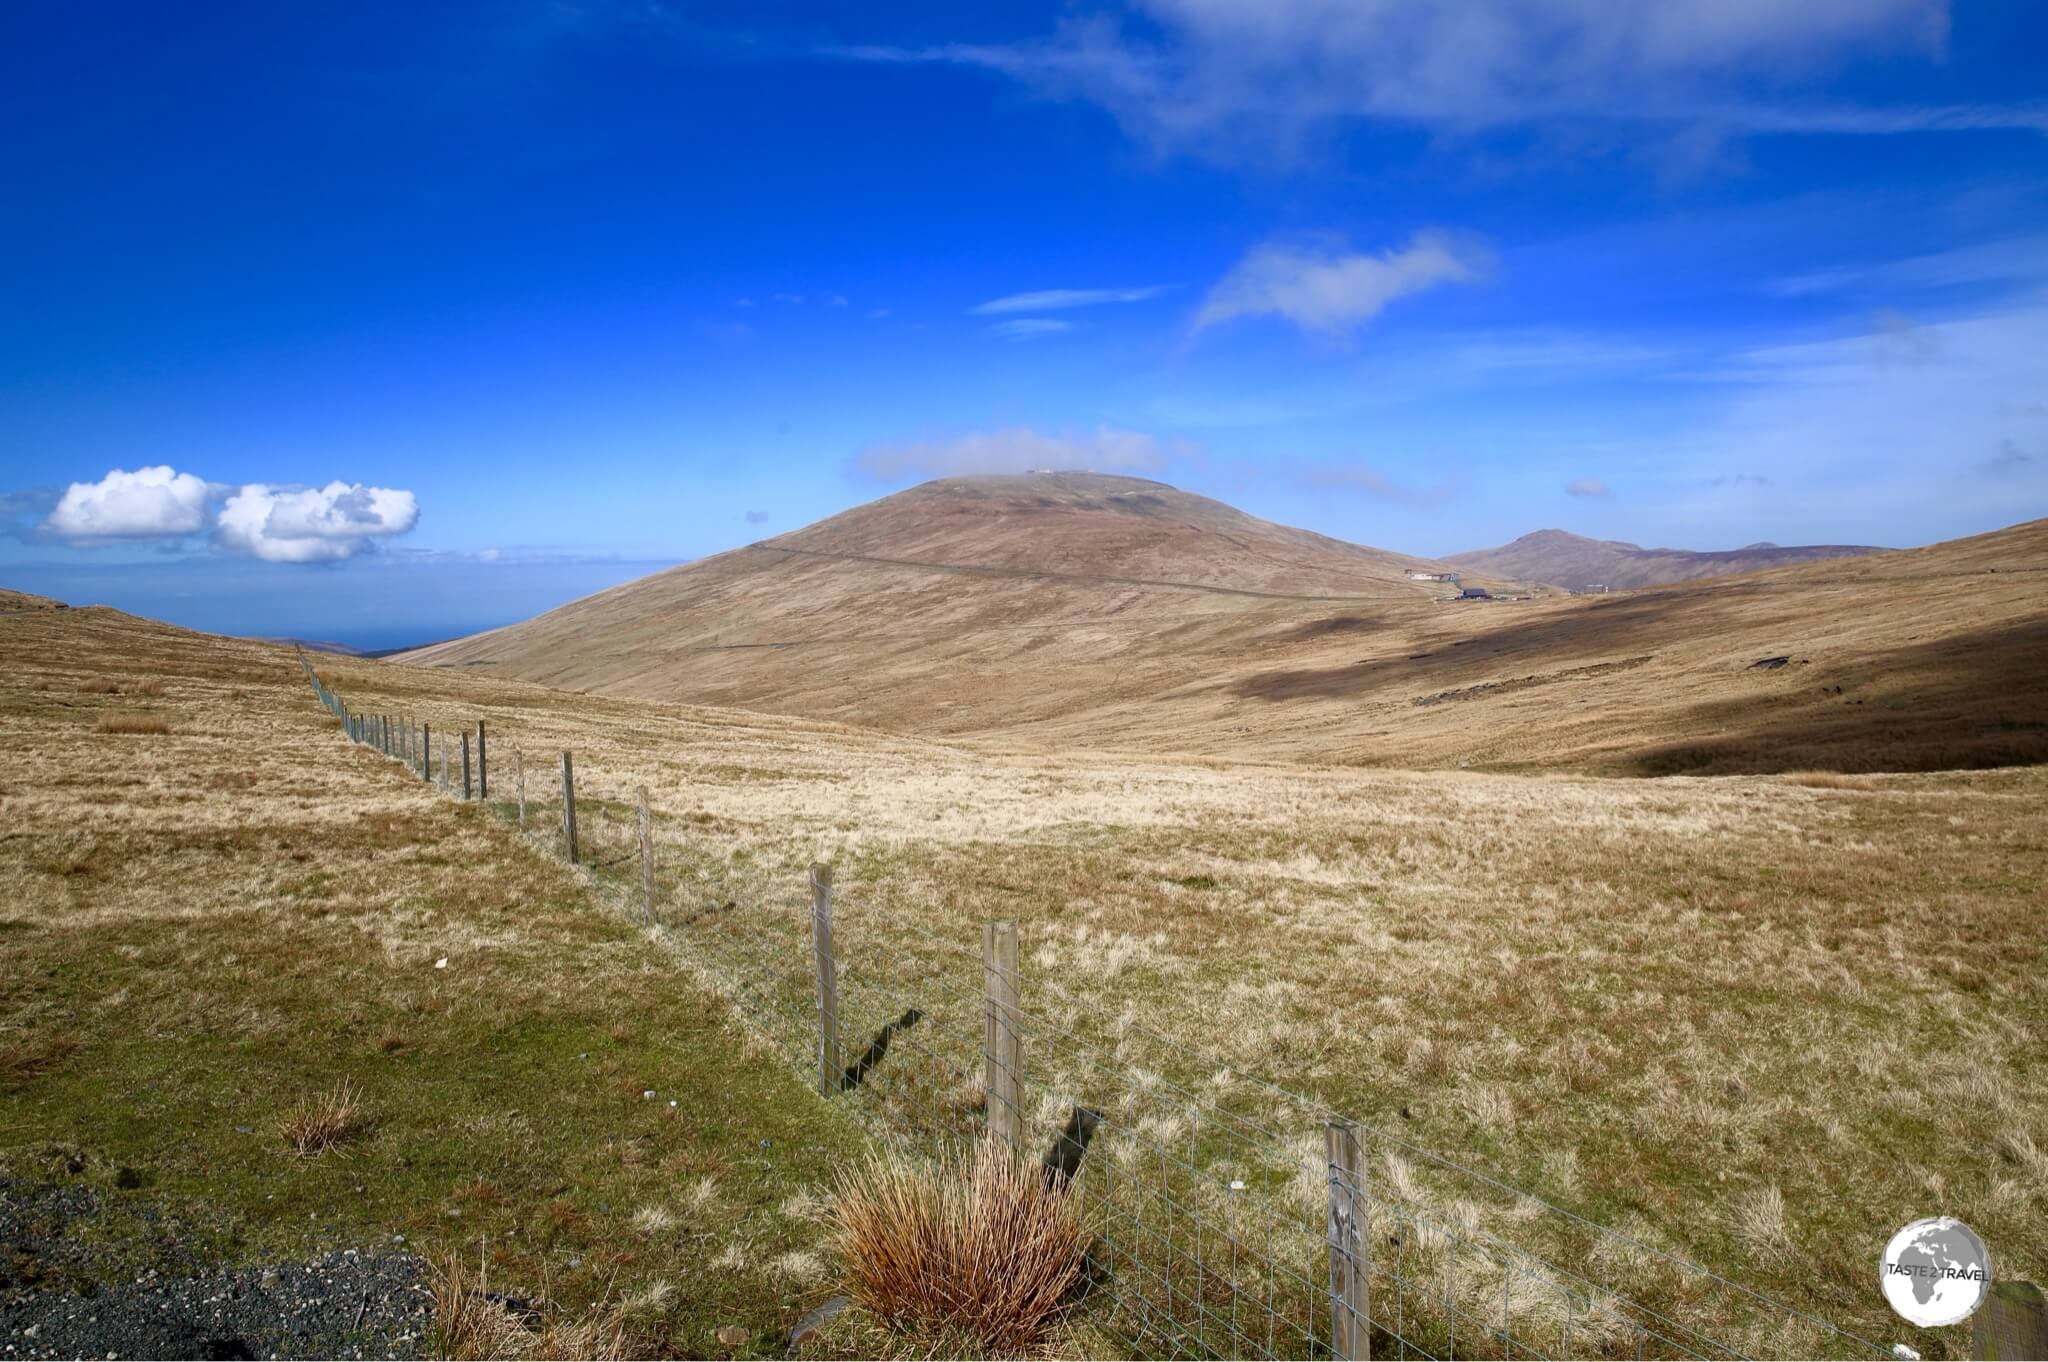 Mt. Snaefell, the highest point on the Isle of Man, rises gently to 621 metres (2037 ft).